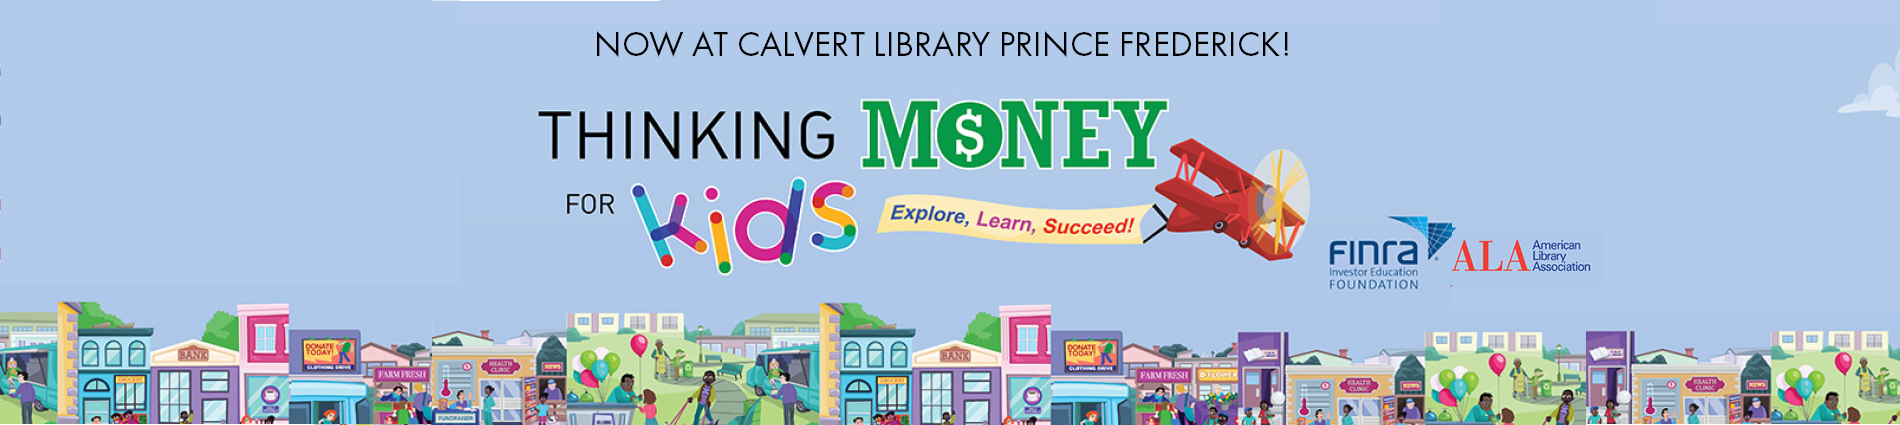 Thinking Money 4 Kids Exhibit now at Calvert Library Prince Frederick